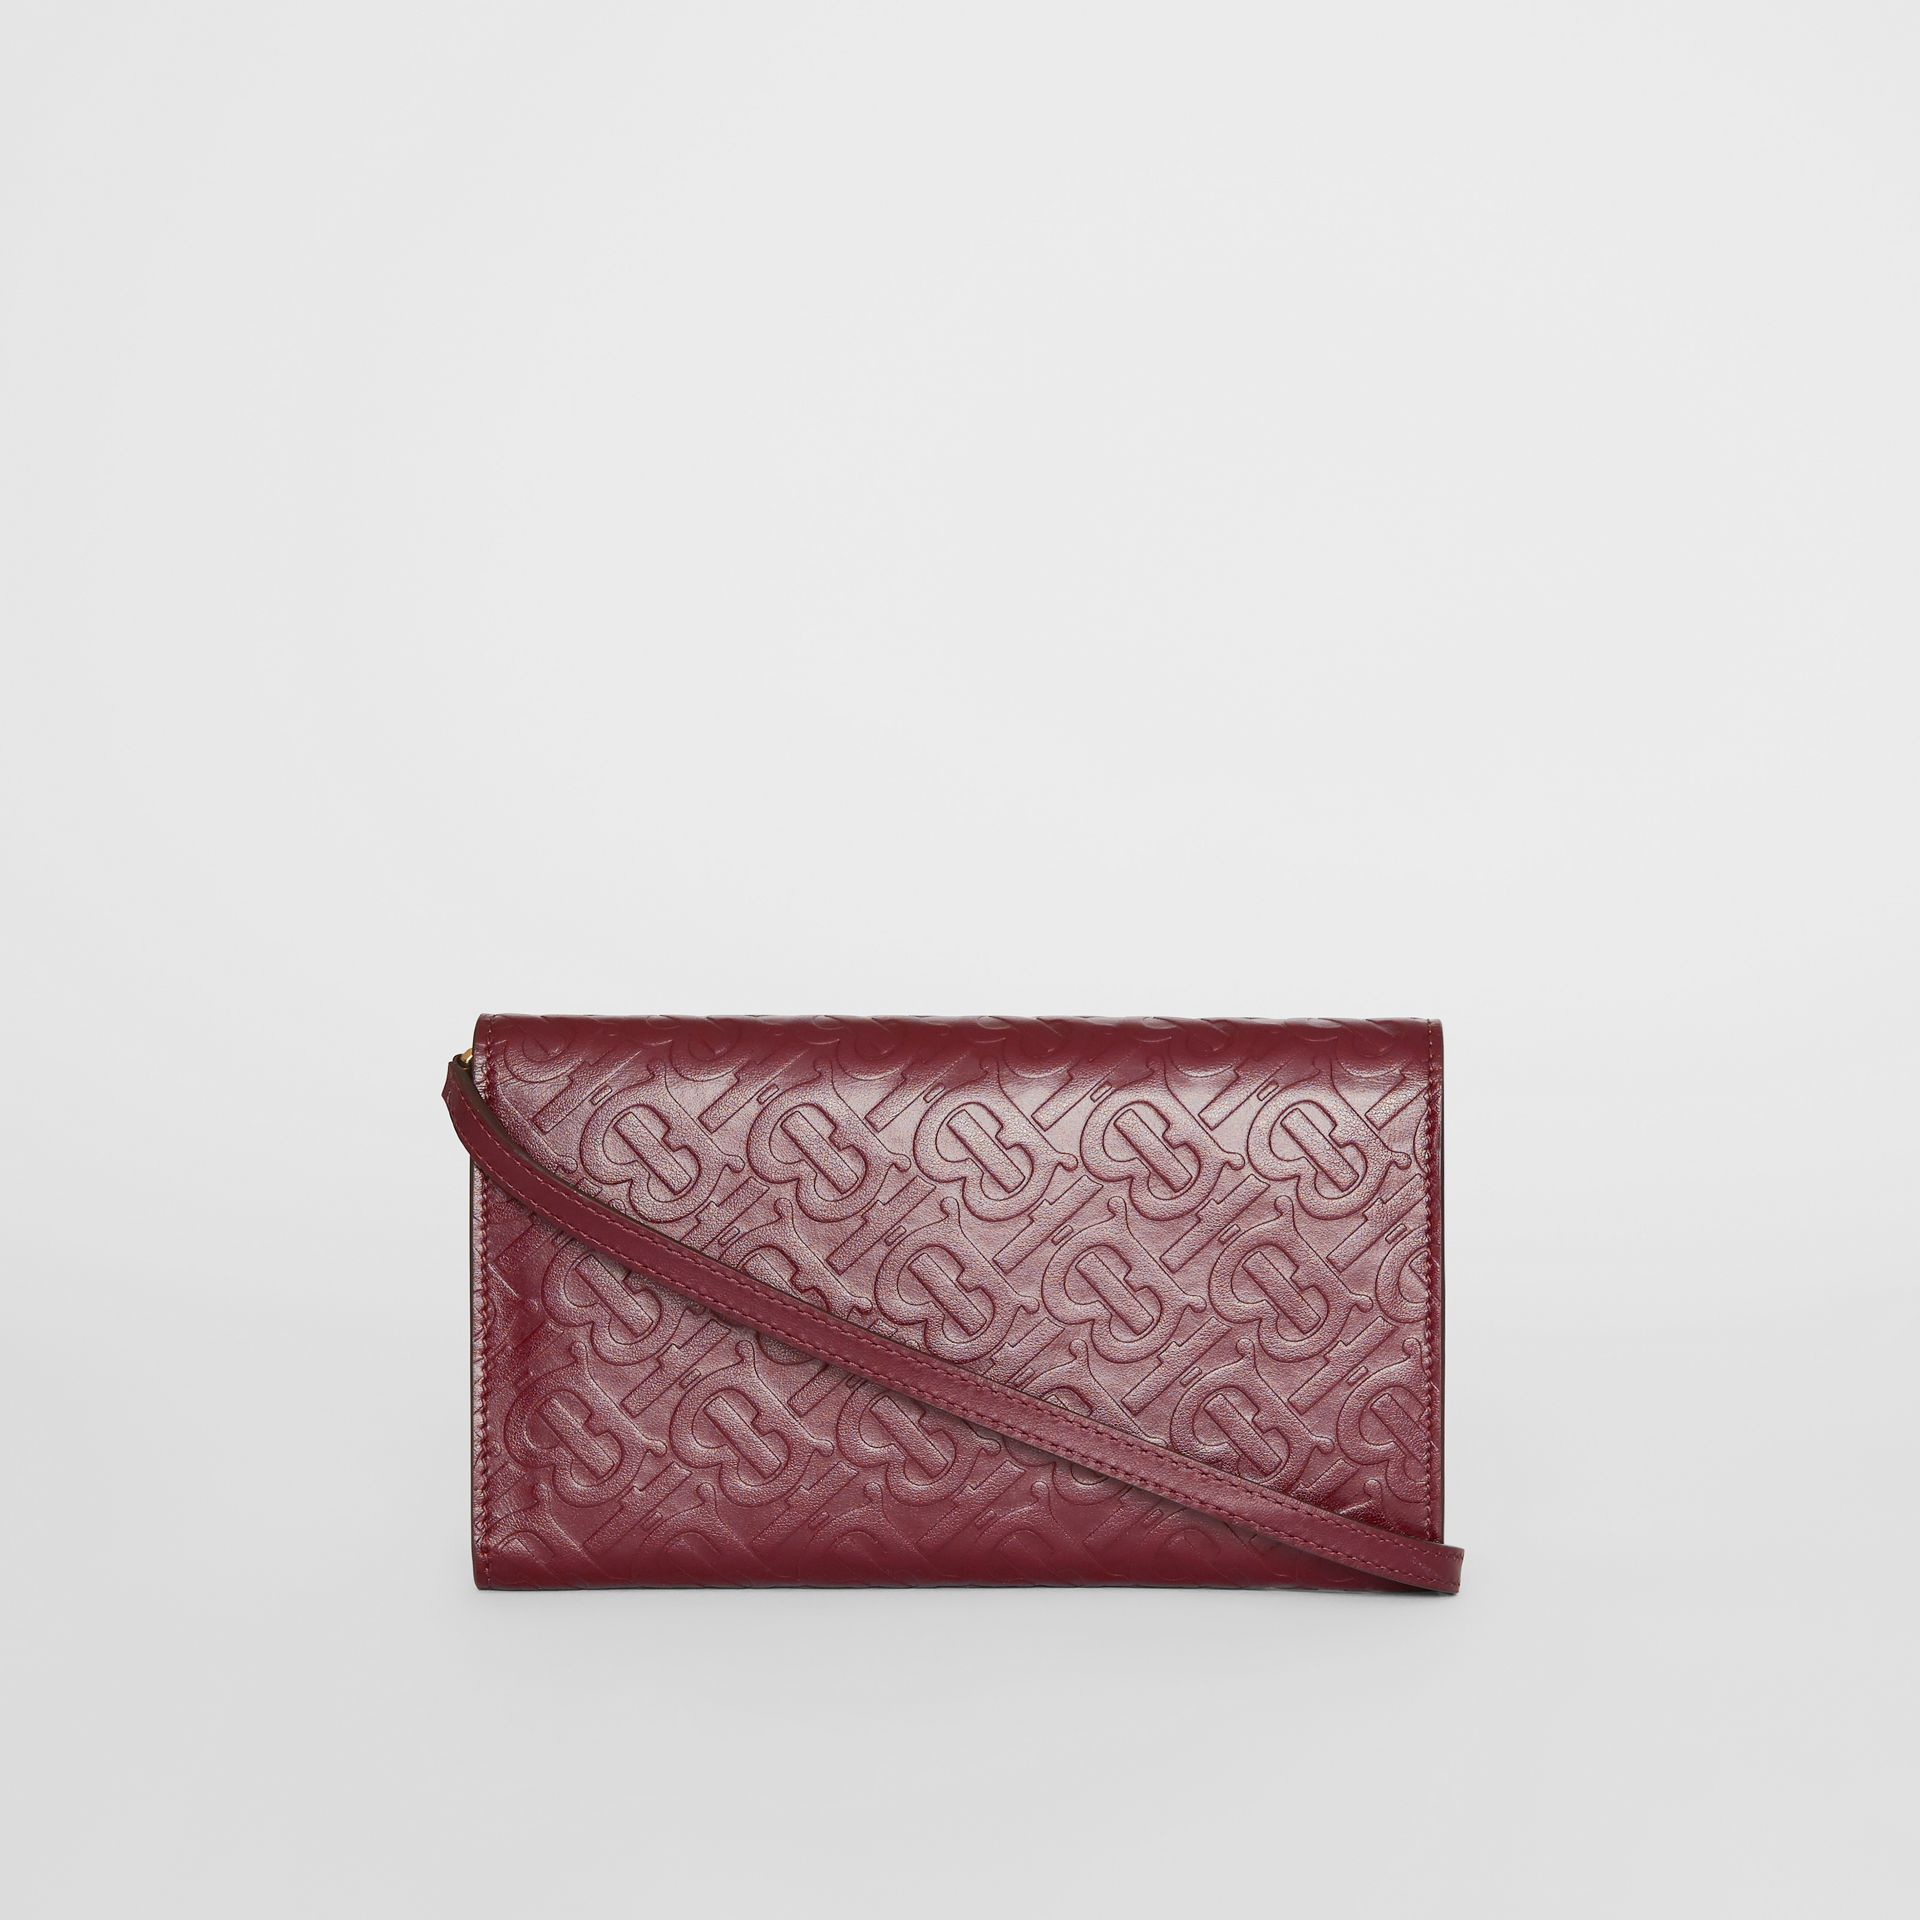 Monogram Leather Wallet with Detachable Strap in Oxblood - Women | Burberry - gallery image 7